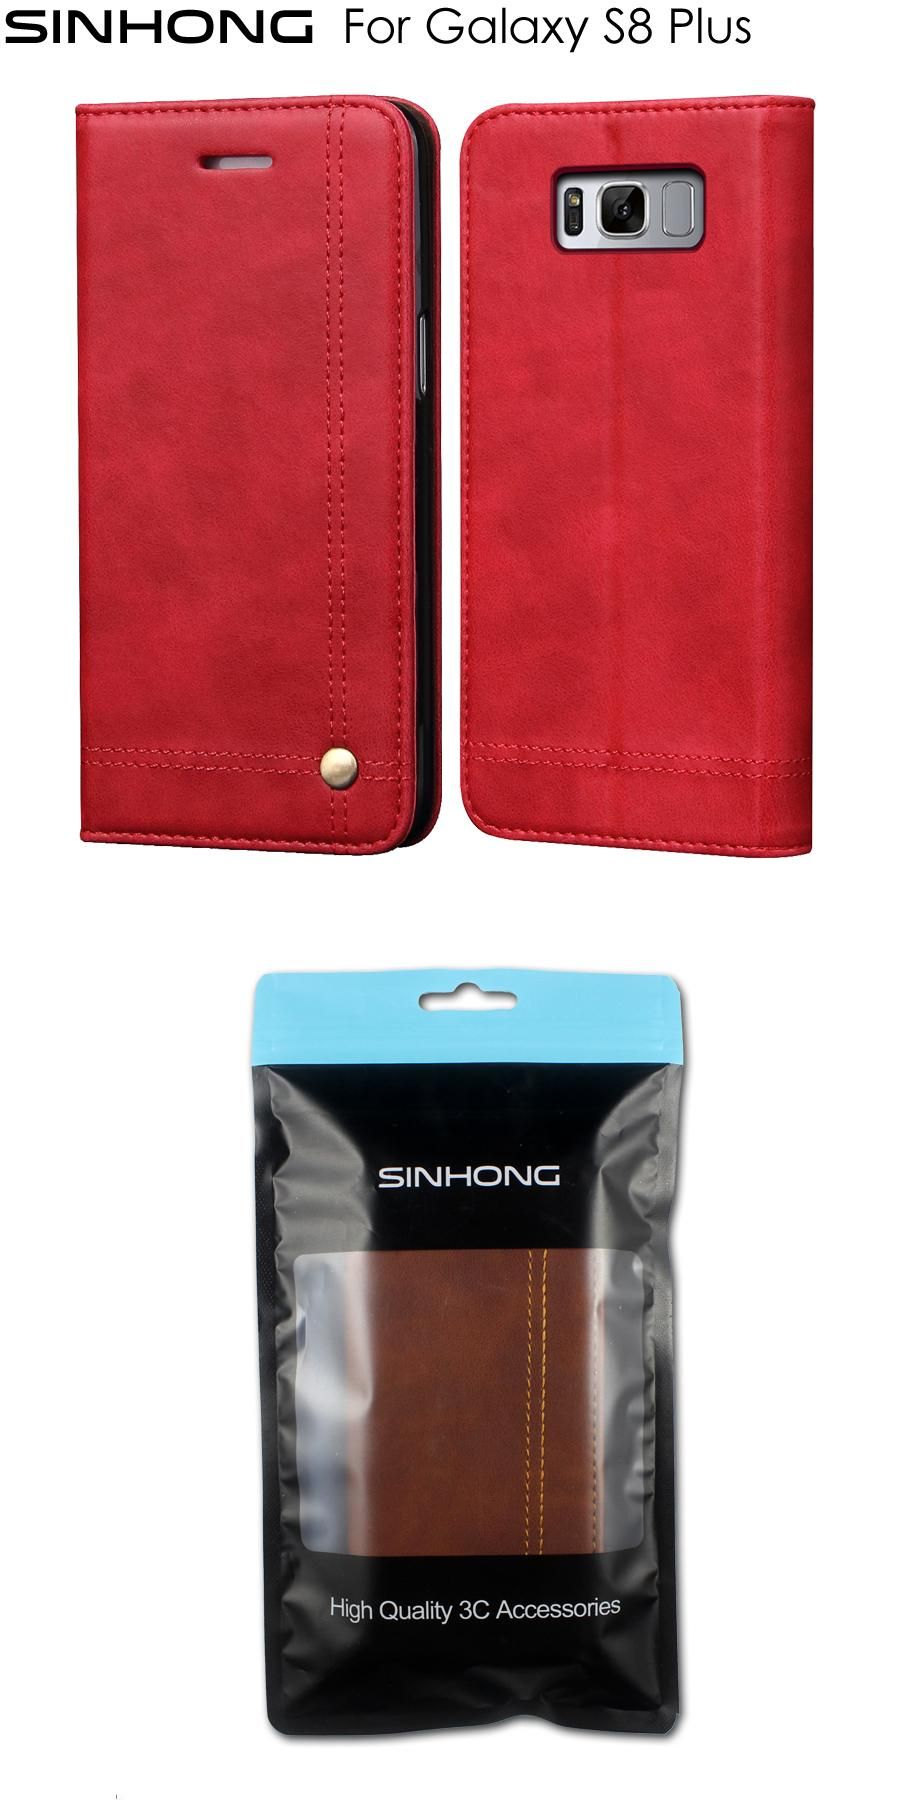 Sinhong Wallet Case Leather Cover For Samsung Galaxy S8 Plus Cases Smart Flip Blackberry Aurora Card Slot Magnet Pouch